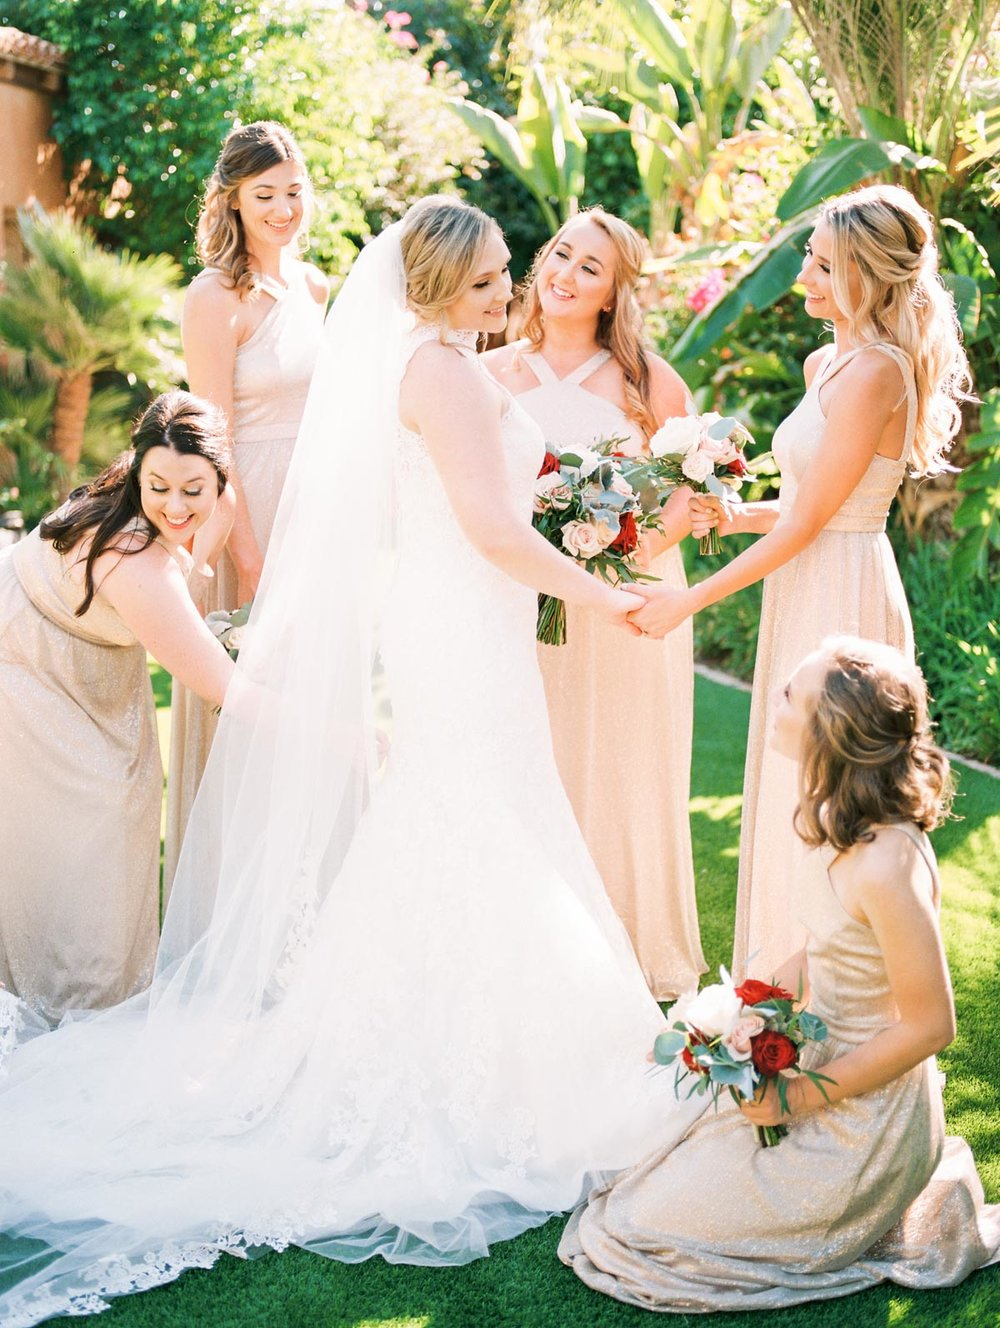 bridesmaids-helping-bride.jpg